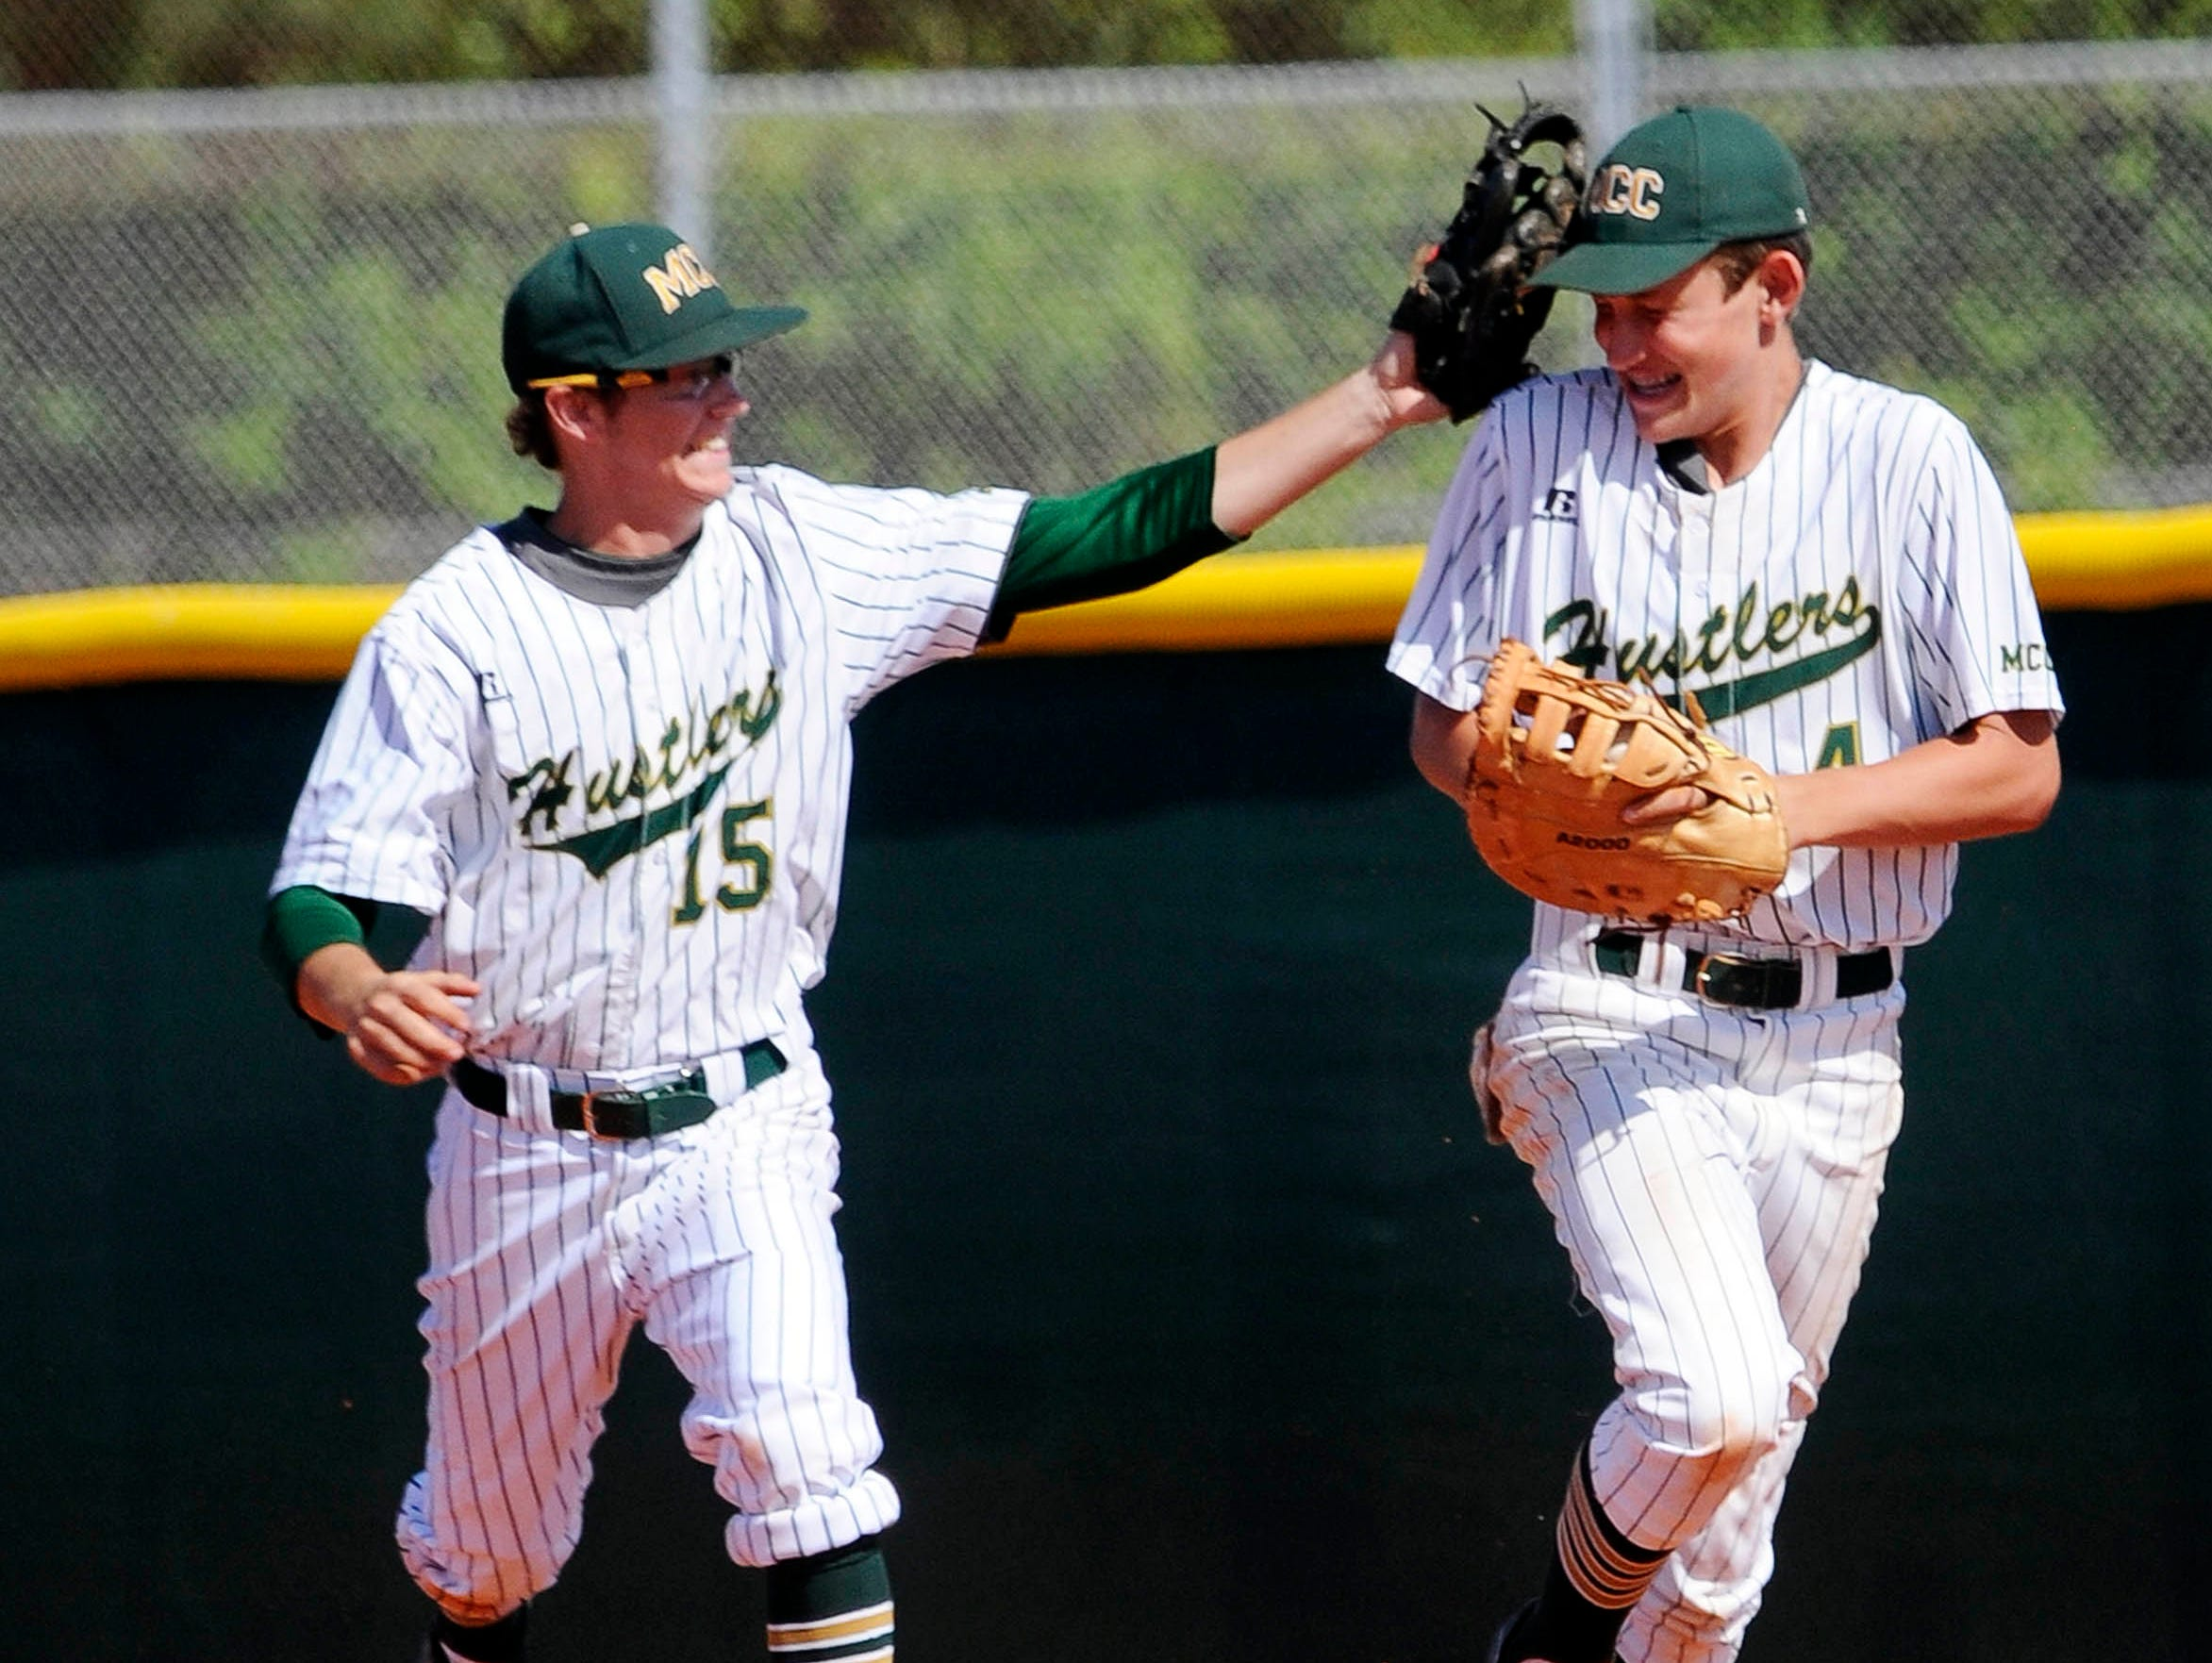 MCC's Colman LalRoche high fives teammate Nick Durgin during Wednesday's game in Melbourne.